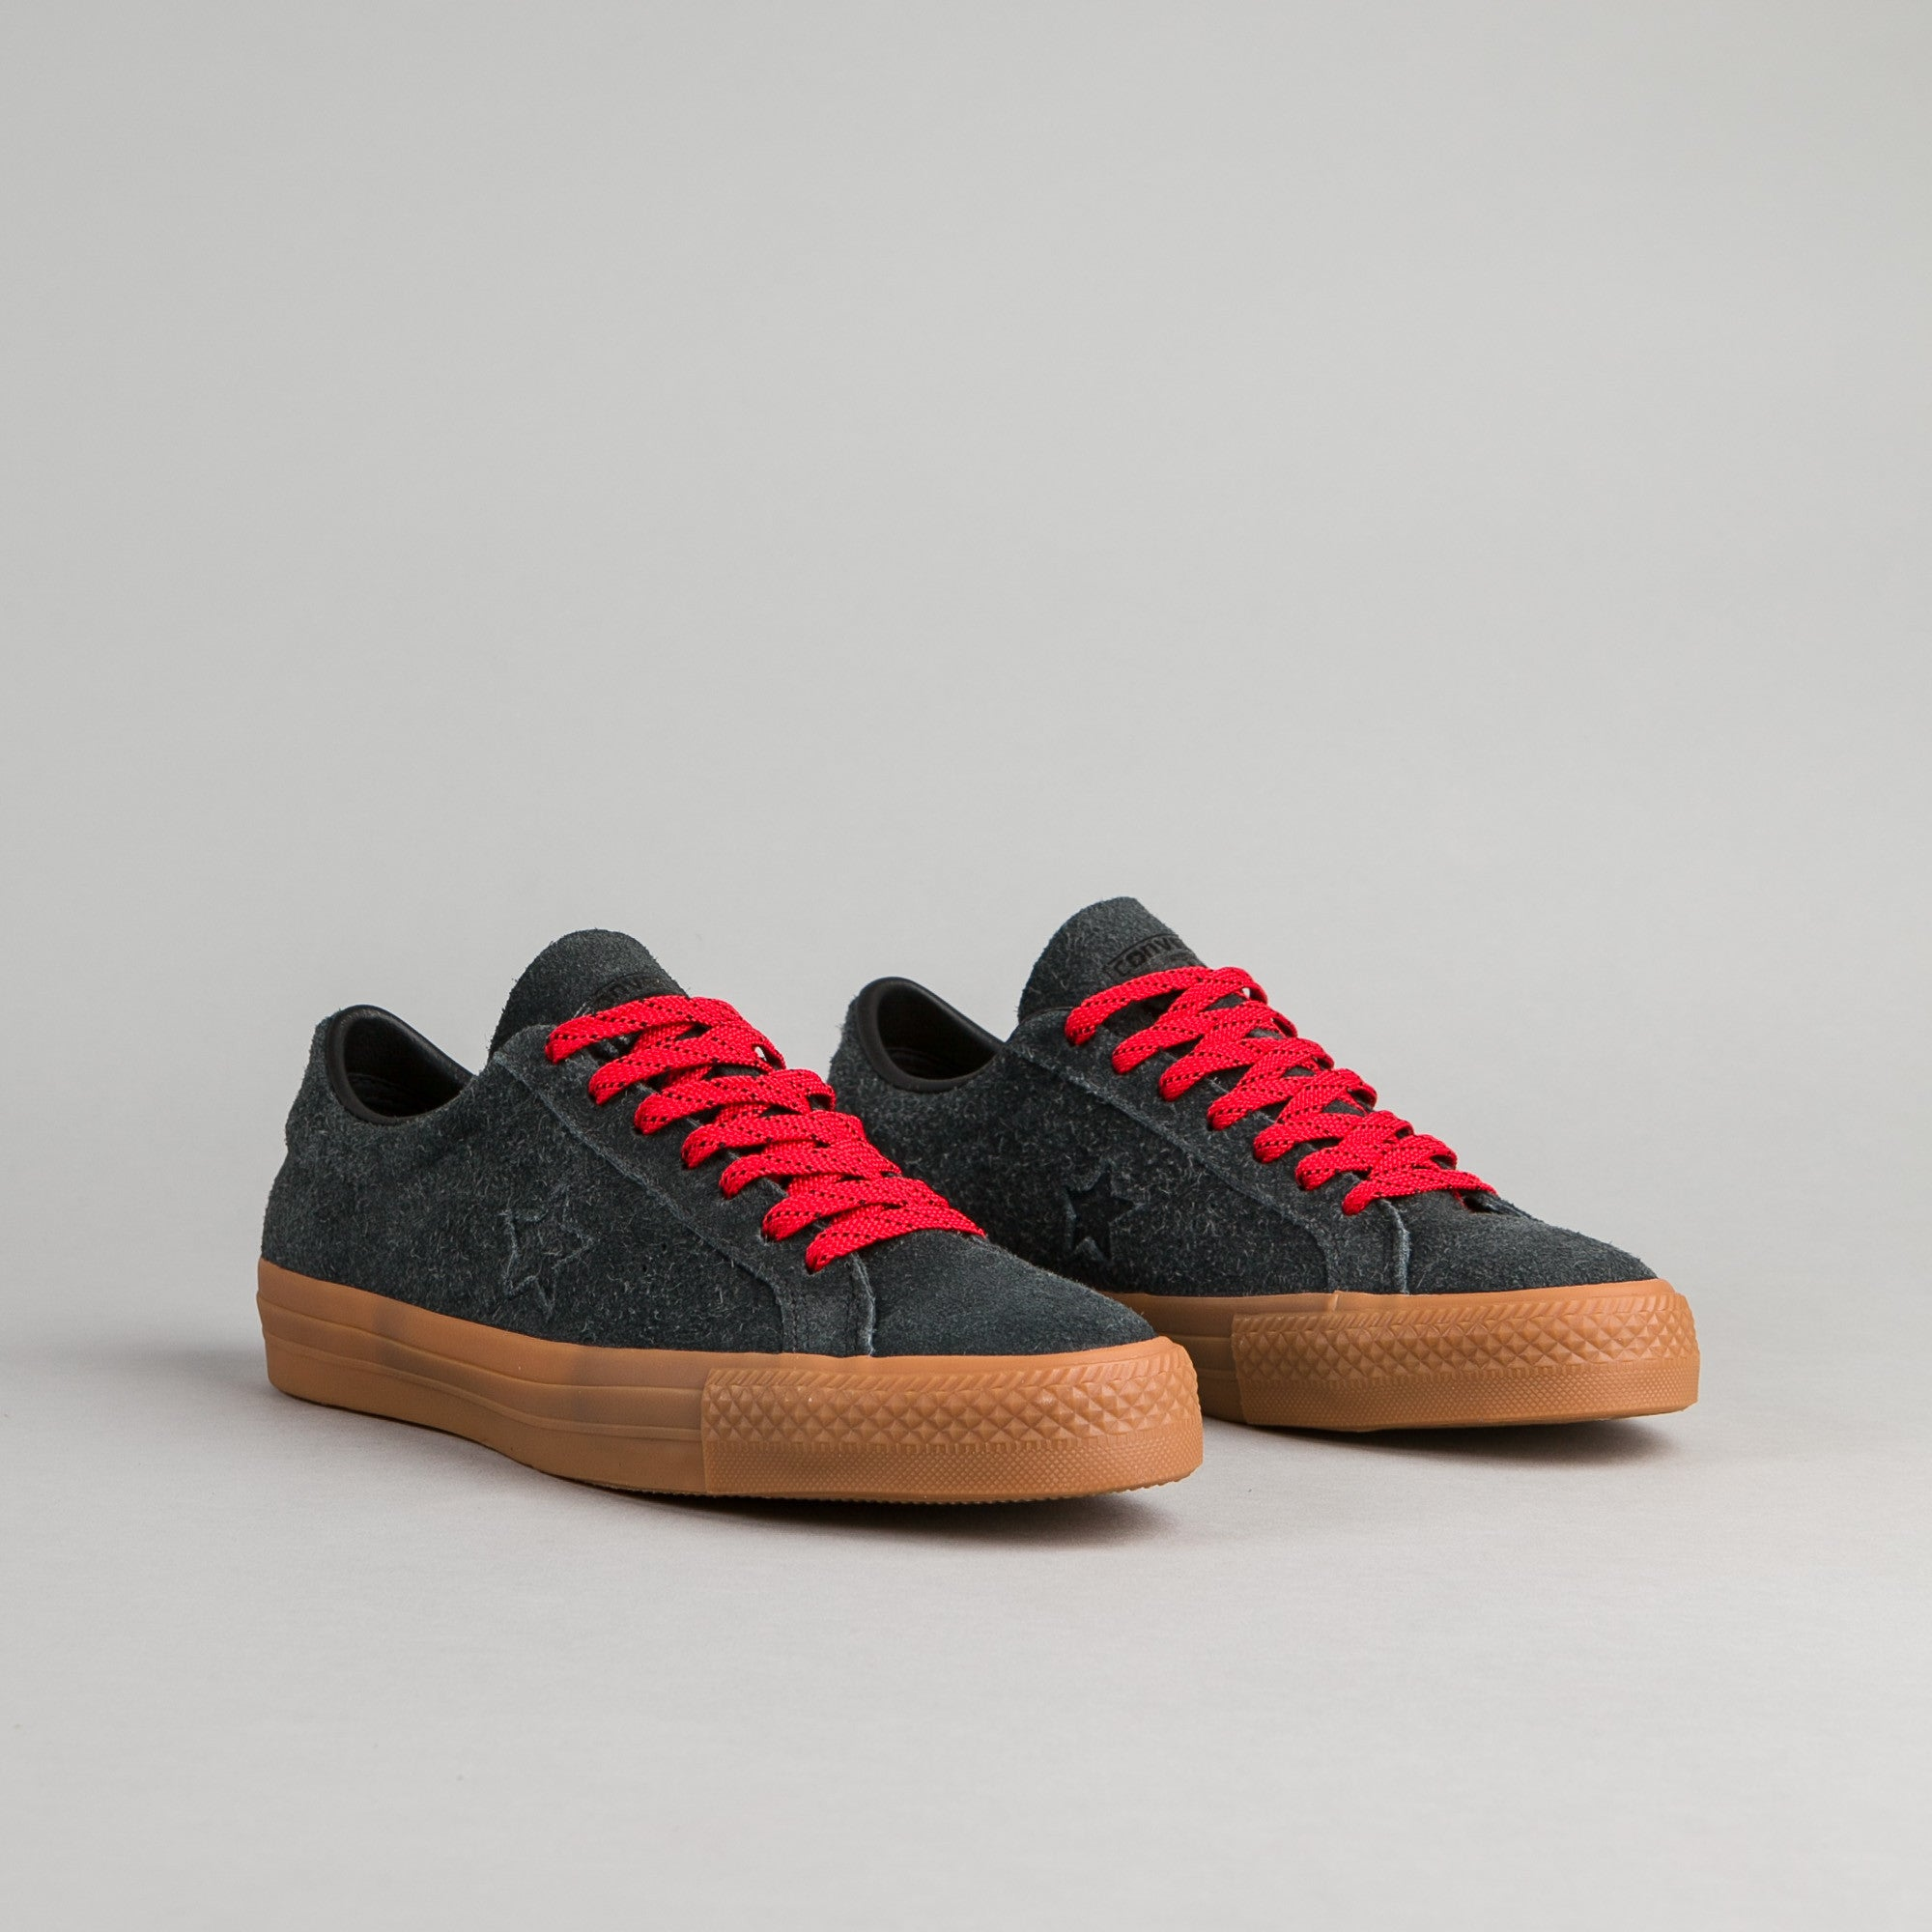 Converse One Star Pro Suede OX Shoes - Black / Casino / Gum